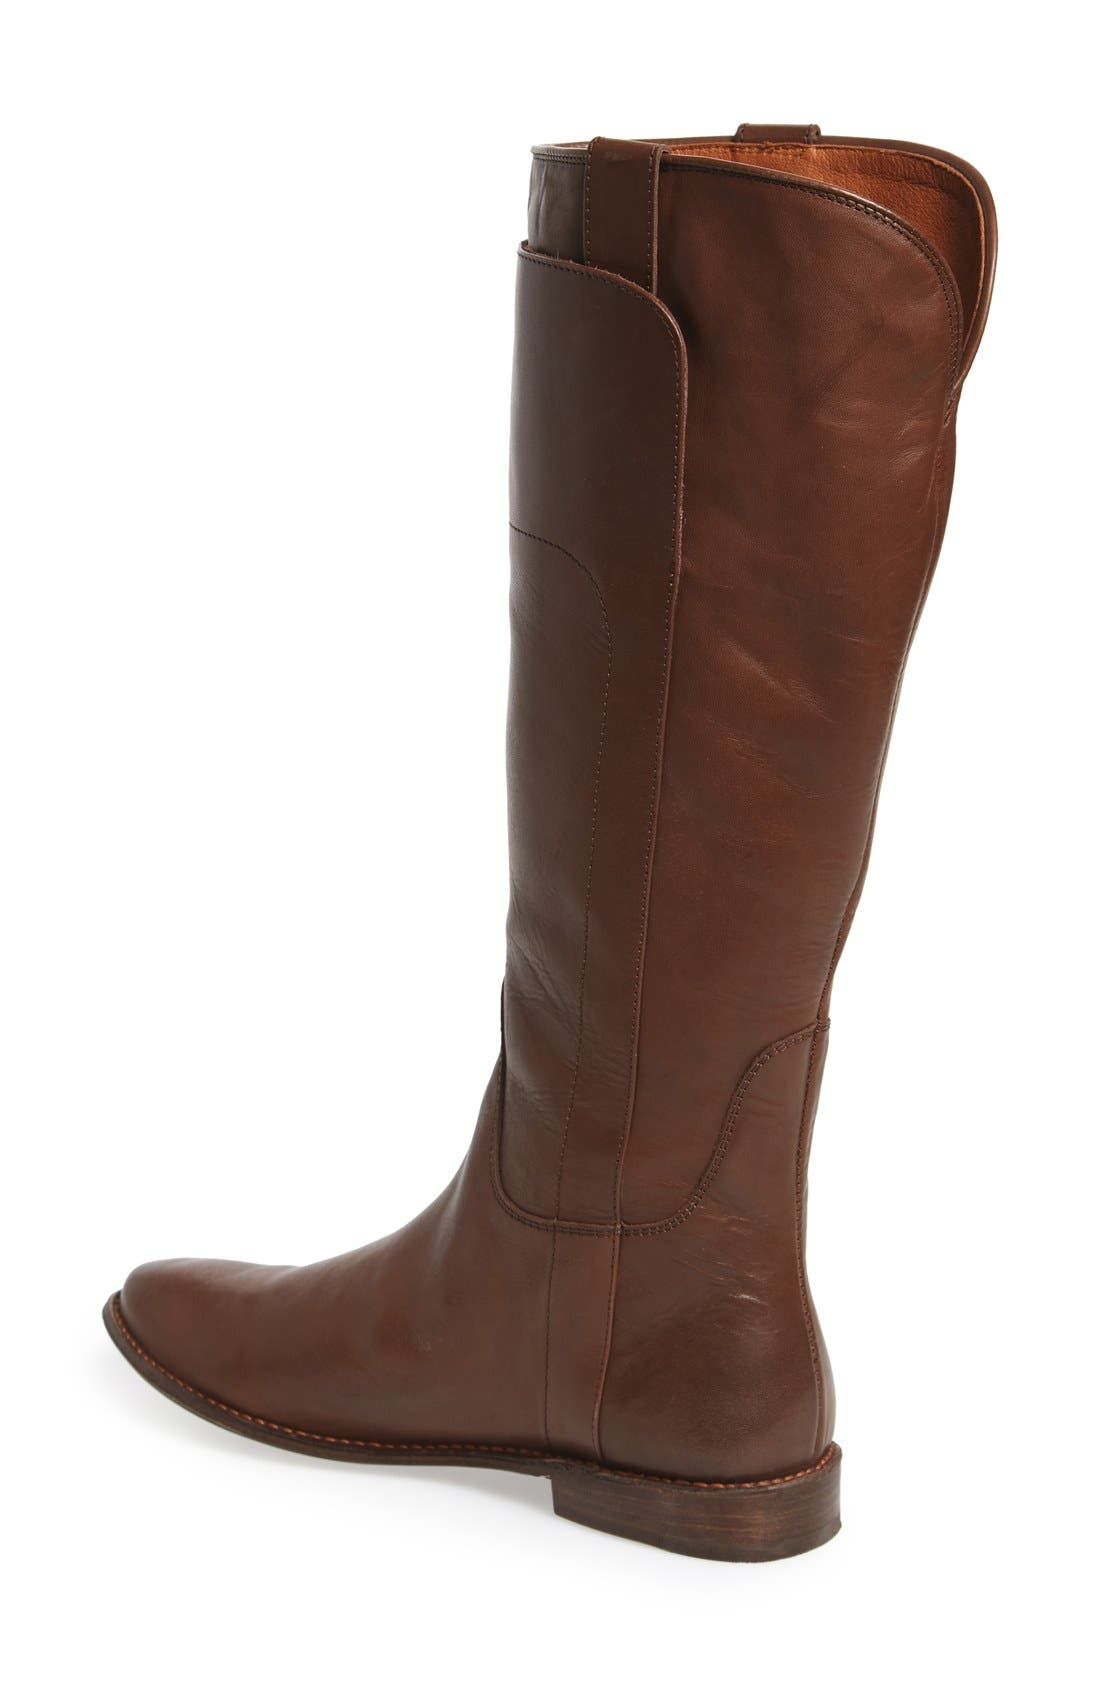 Alternate Image 2  - Frye 'Paige' Tall Riding Boot (Women) (Wide Calf)